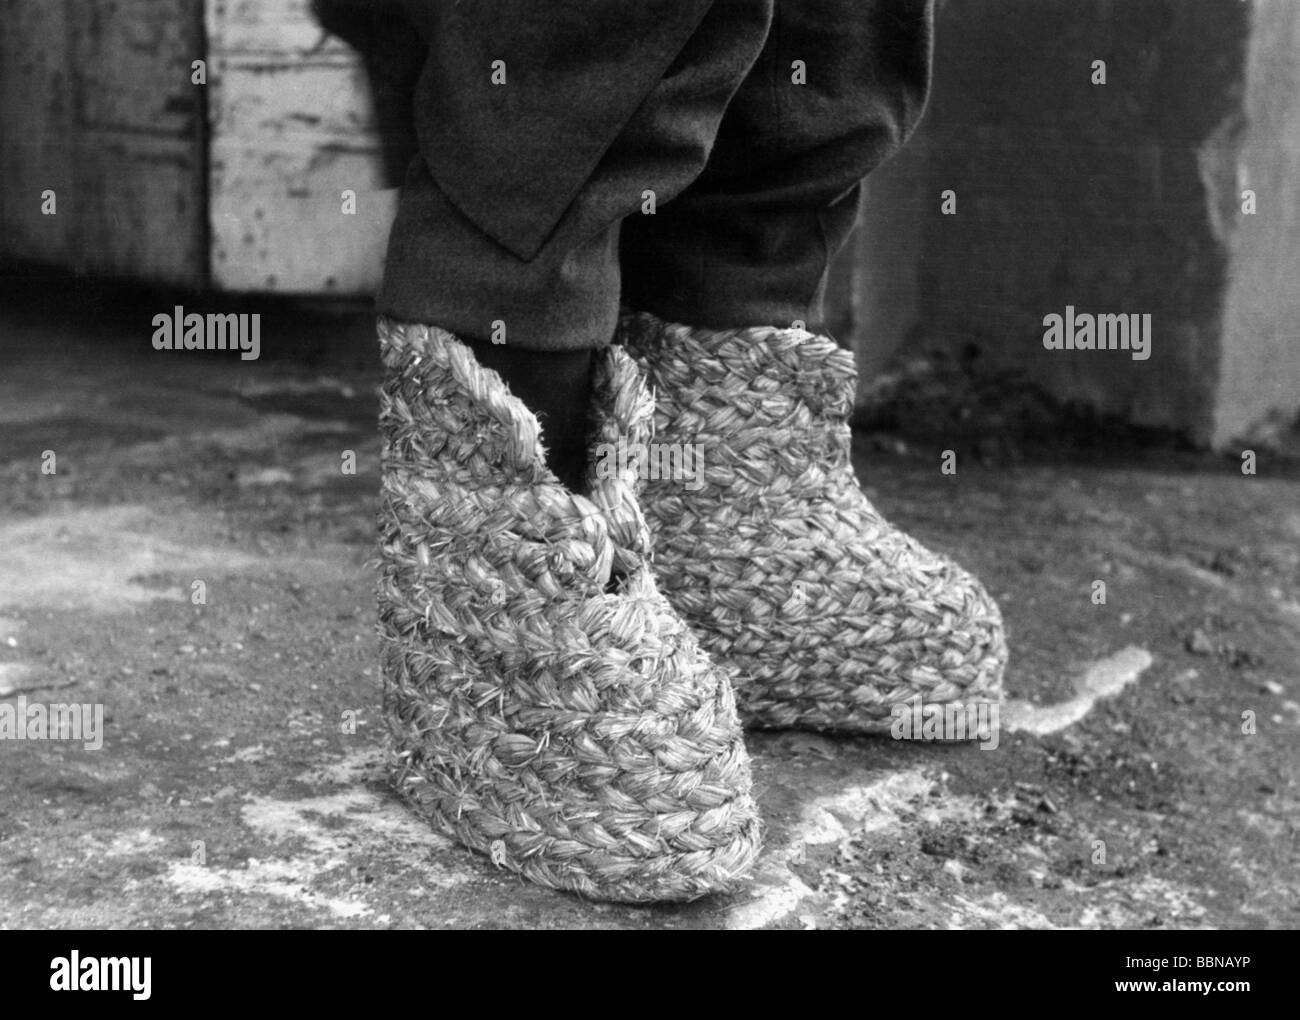 events-second-world-war-wwii-german-wehrmacht-straw-shoes-against-BBNAYP.jpg